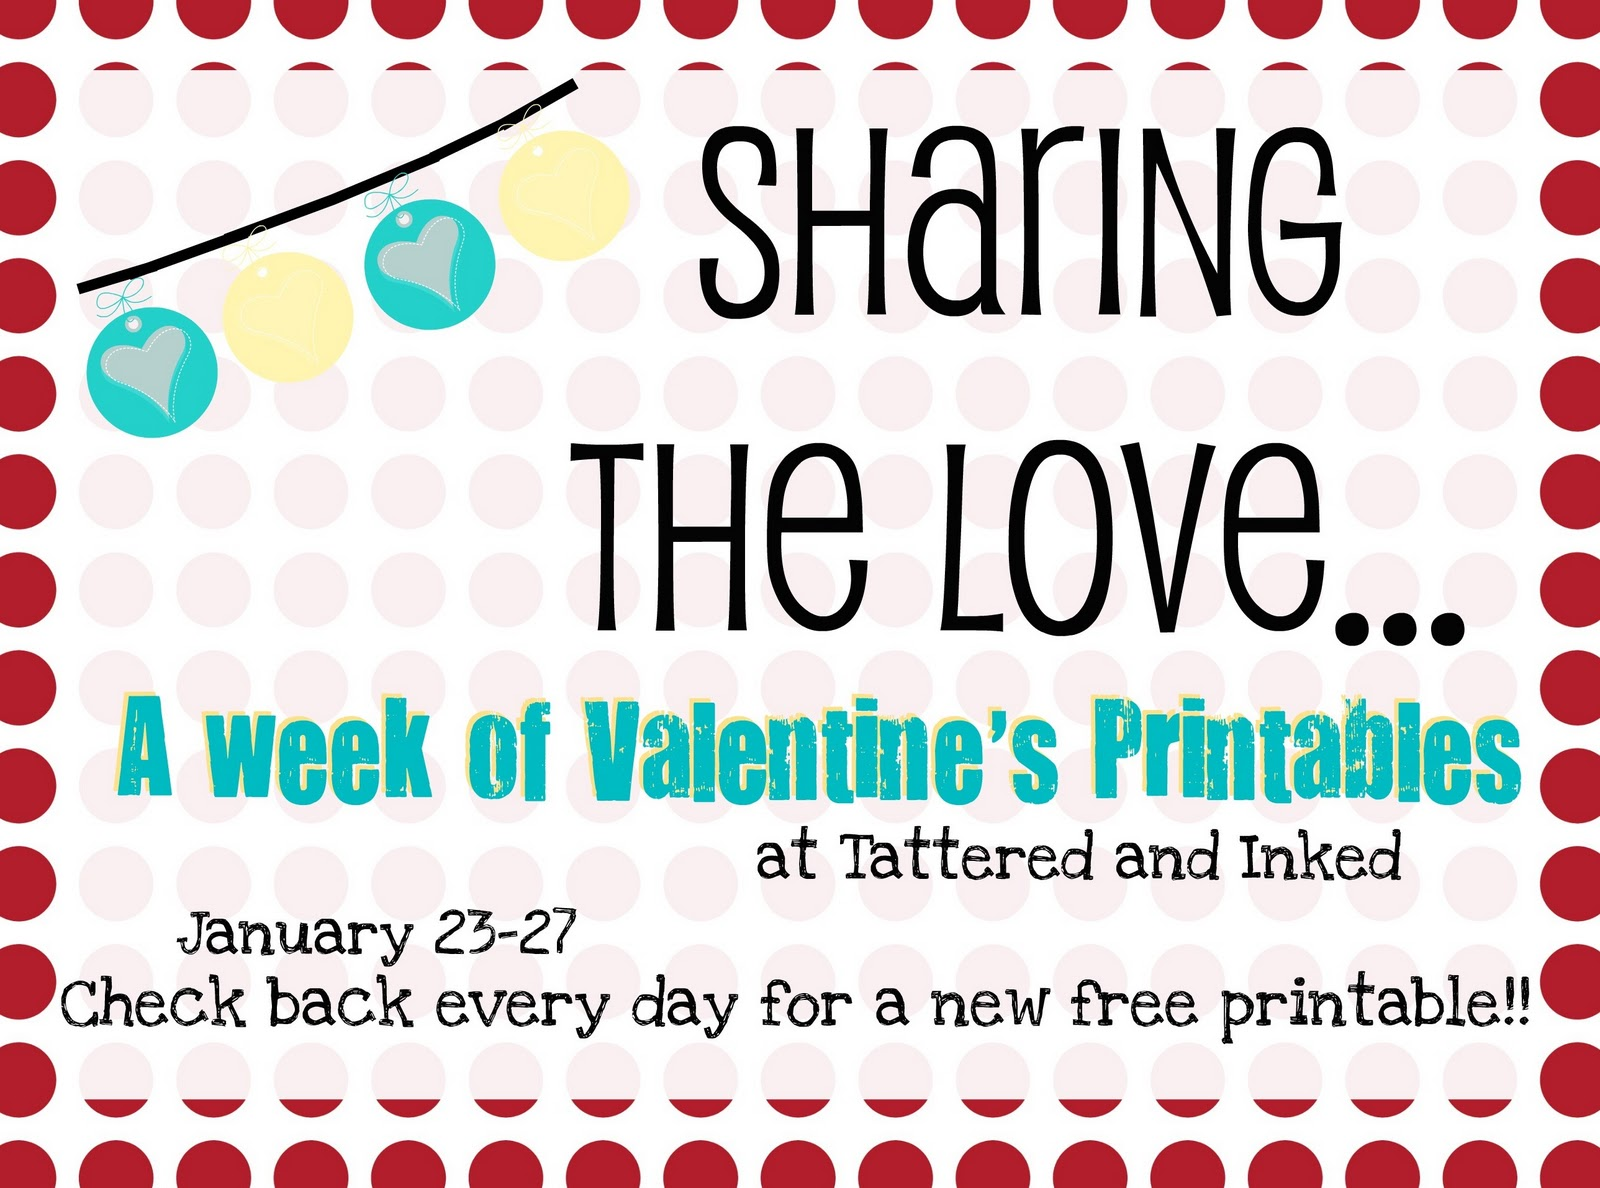 Tattered And Inked A Week Of Valentine S Printables Bushel In A Peck In New Colors